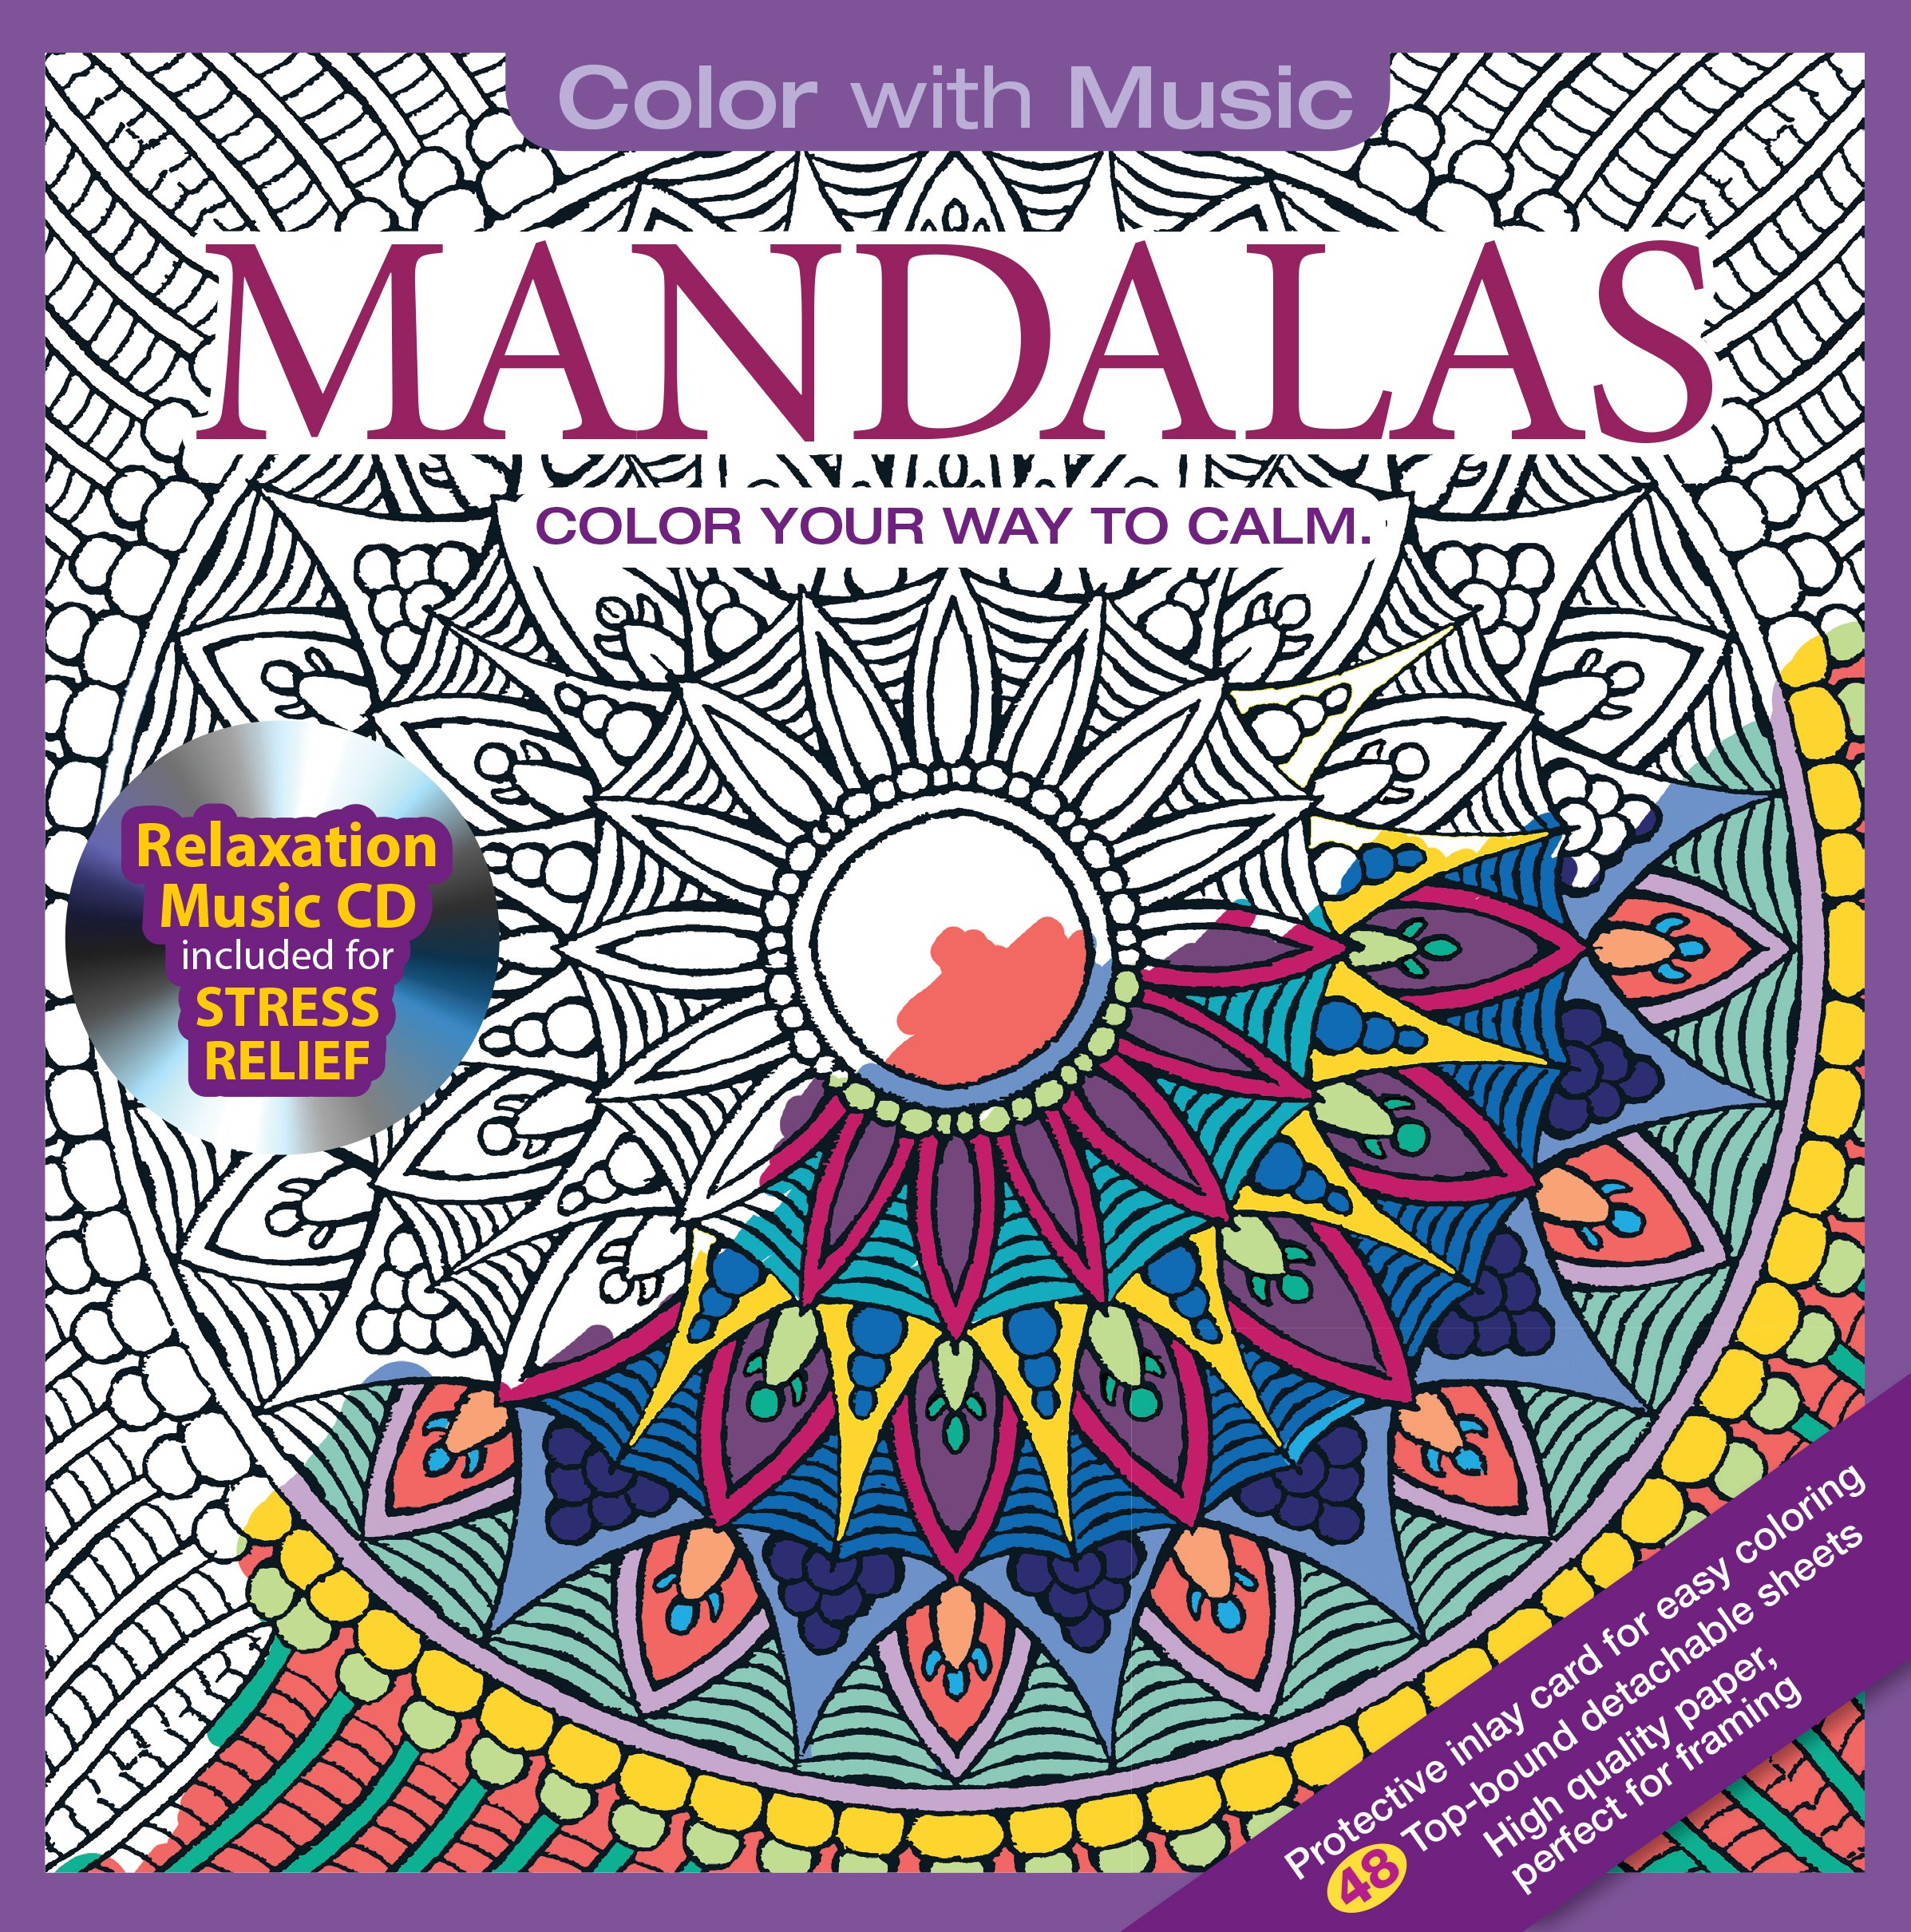 Amazon Mandalas Adult Coloring Book With Bonus Relaxation Music CD Included Color 9781988137032 Various Artists Books